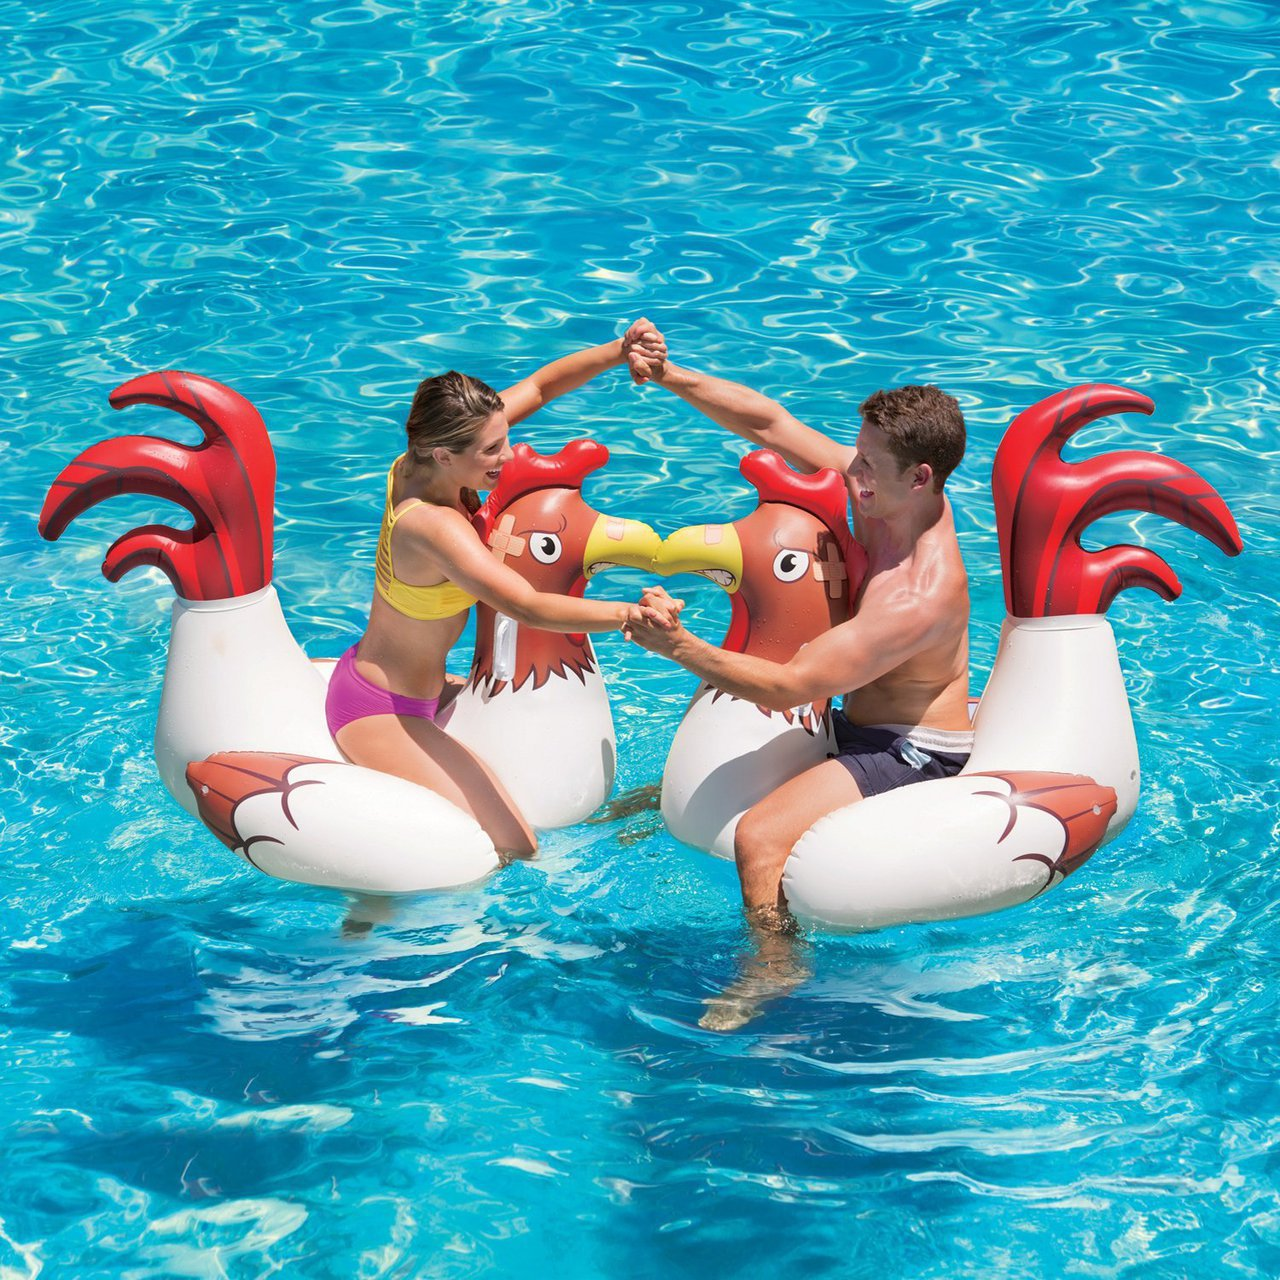 Chicken Fight Pool Floats